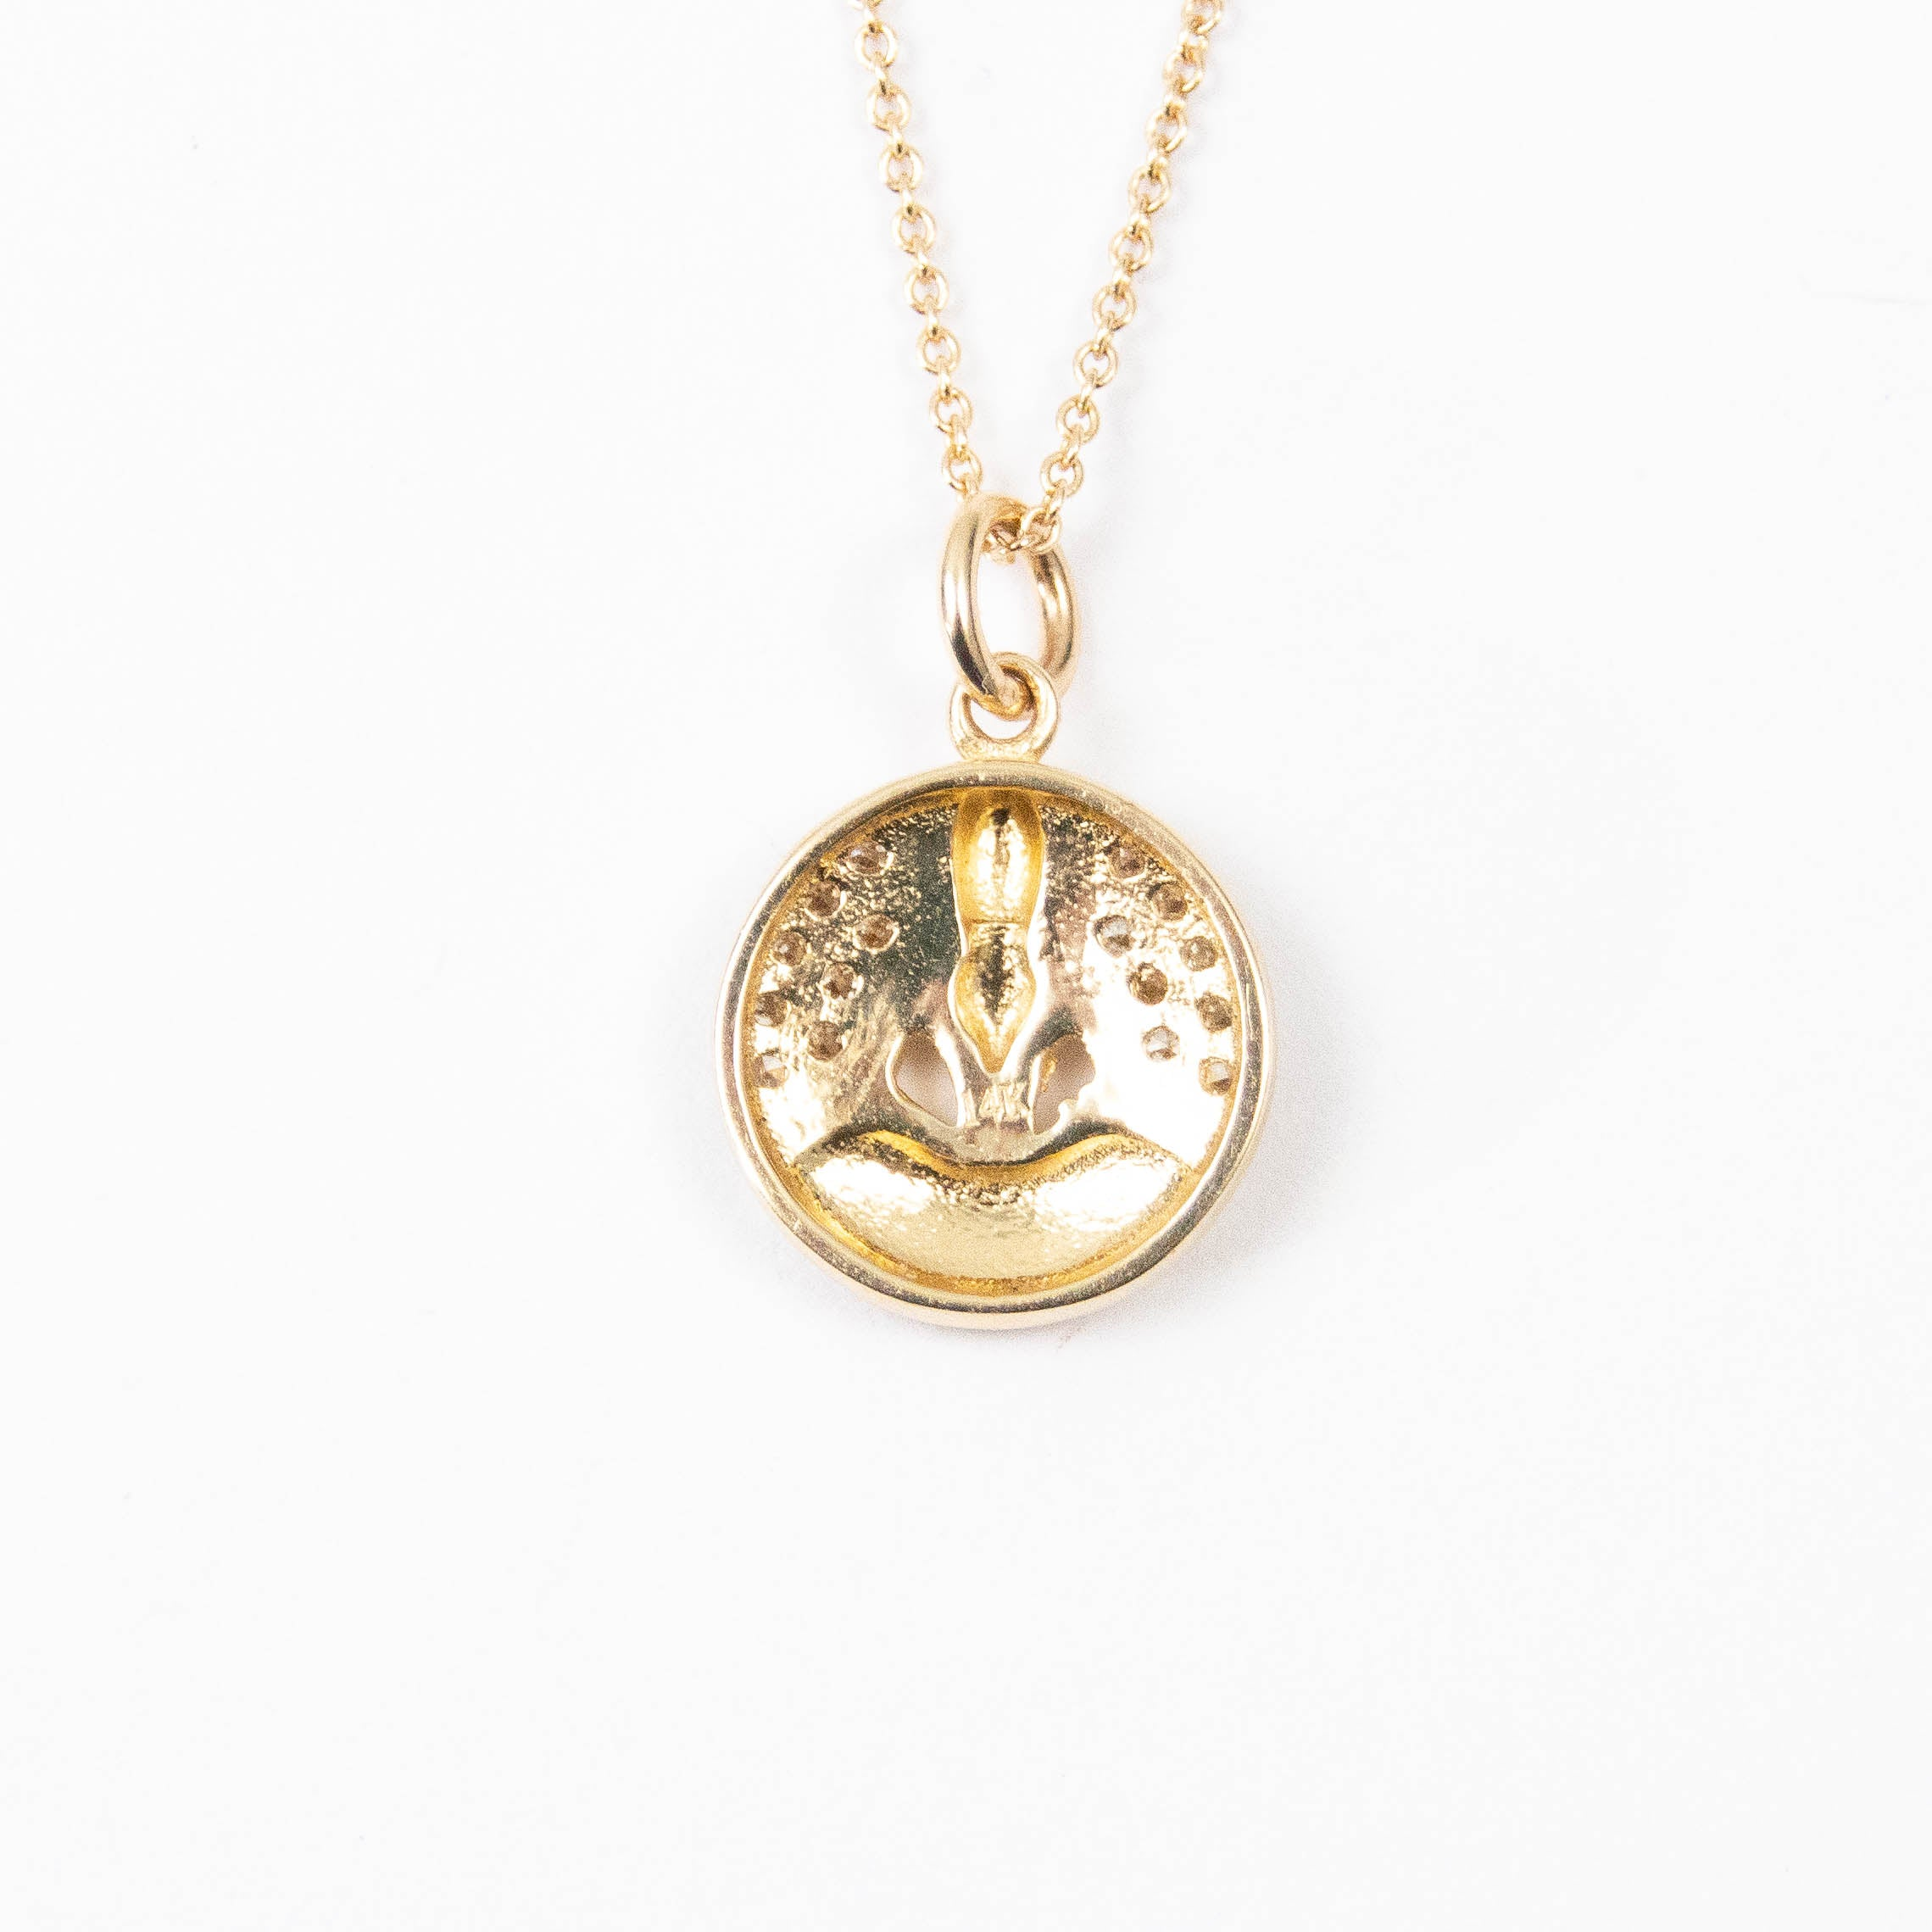 14kt Gold & Diamond Meditating Buddha Charm Necklace